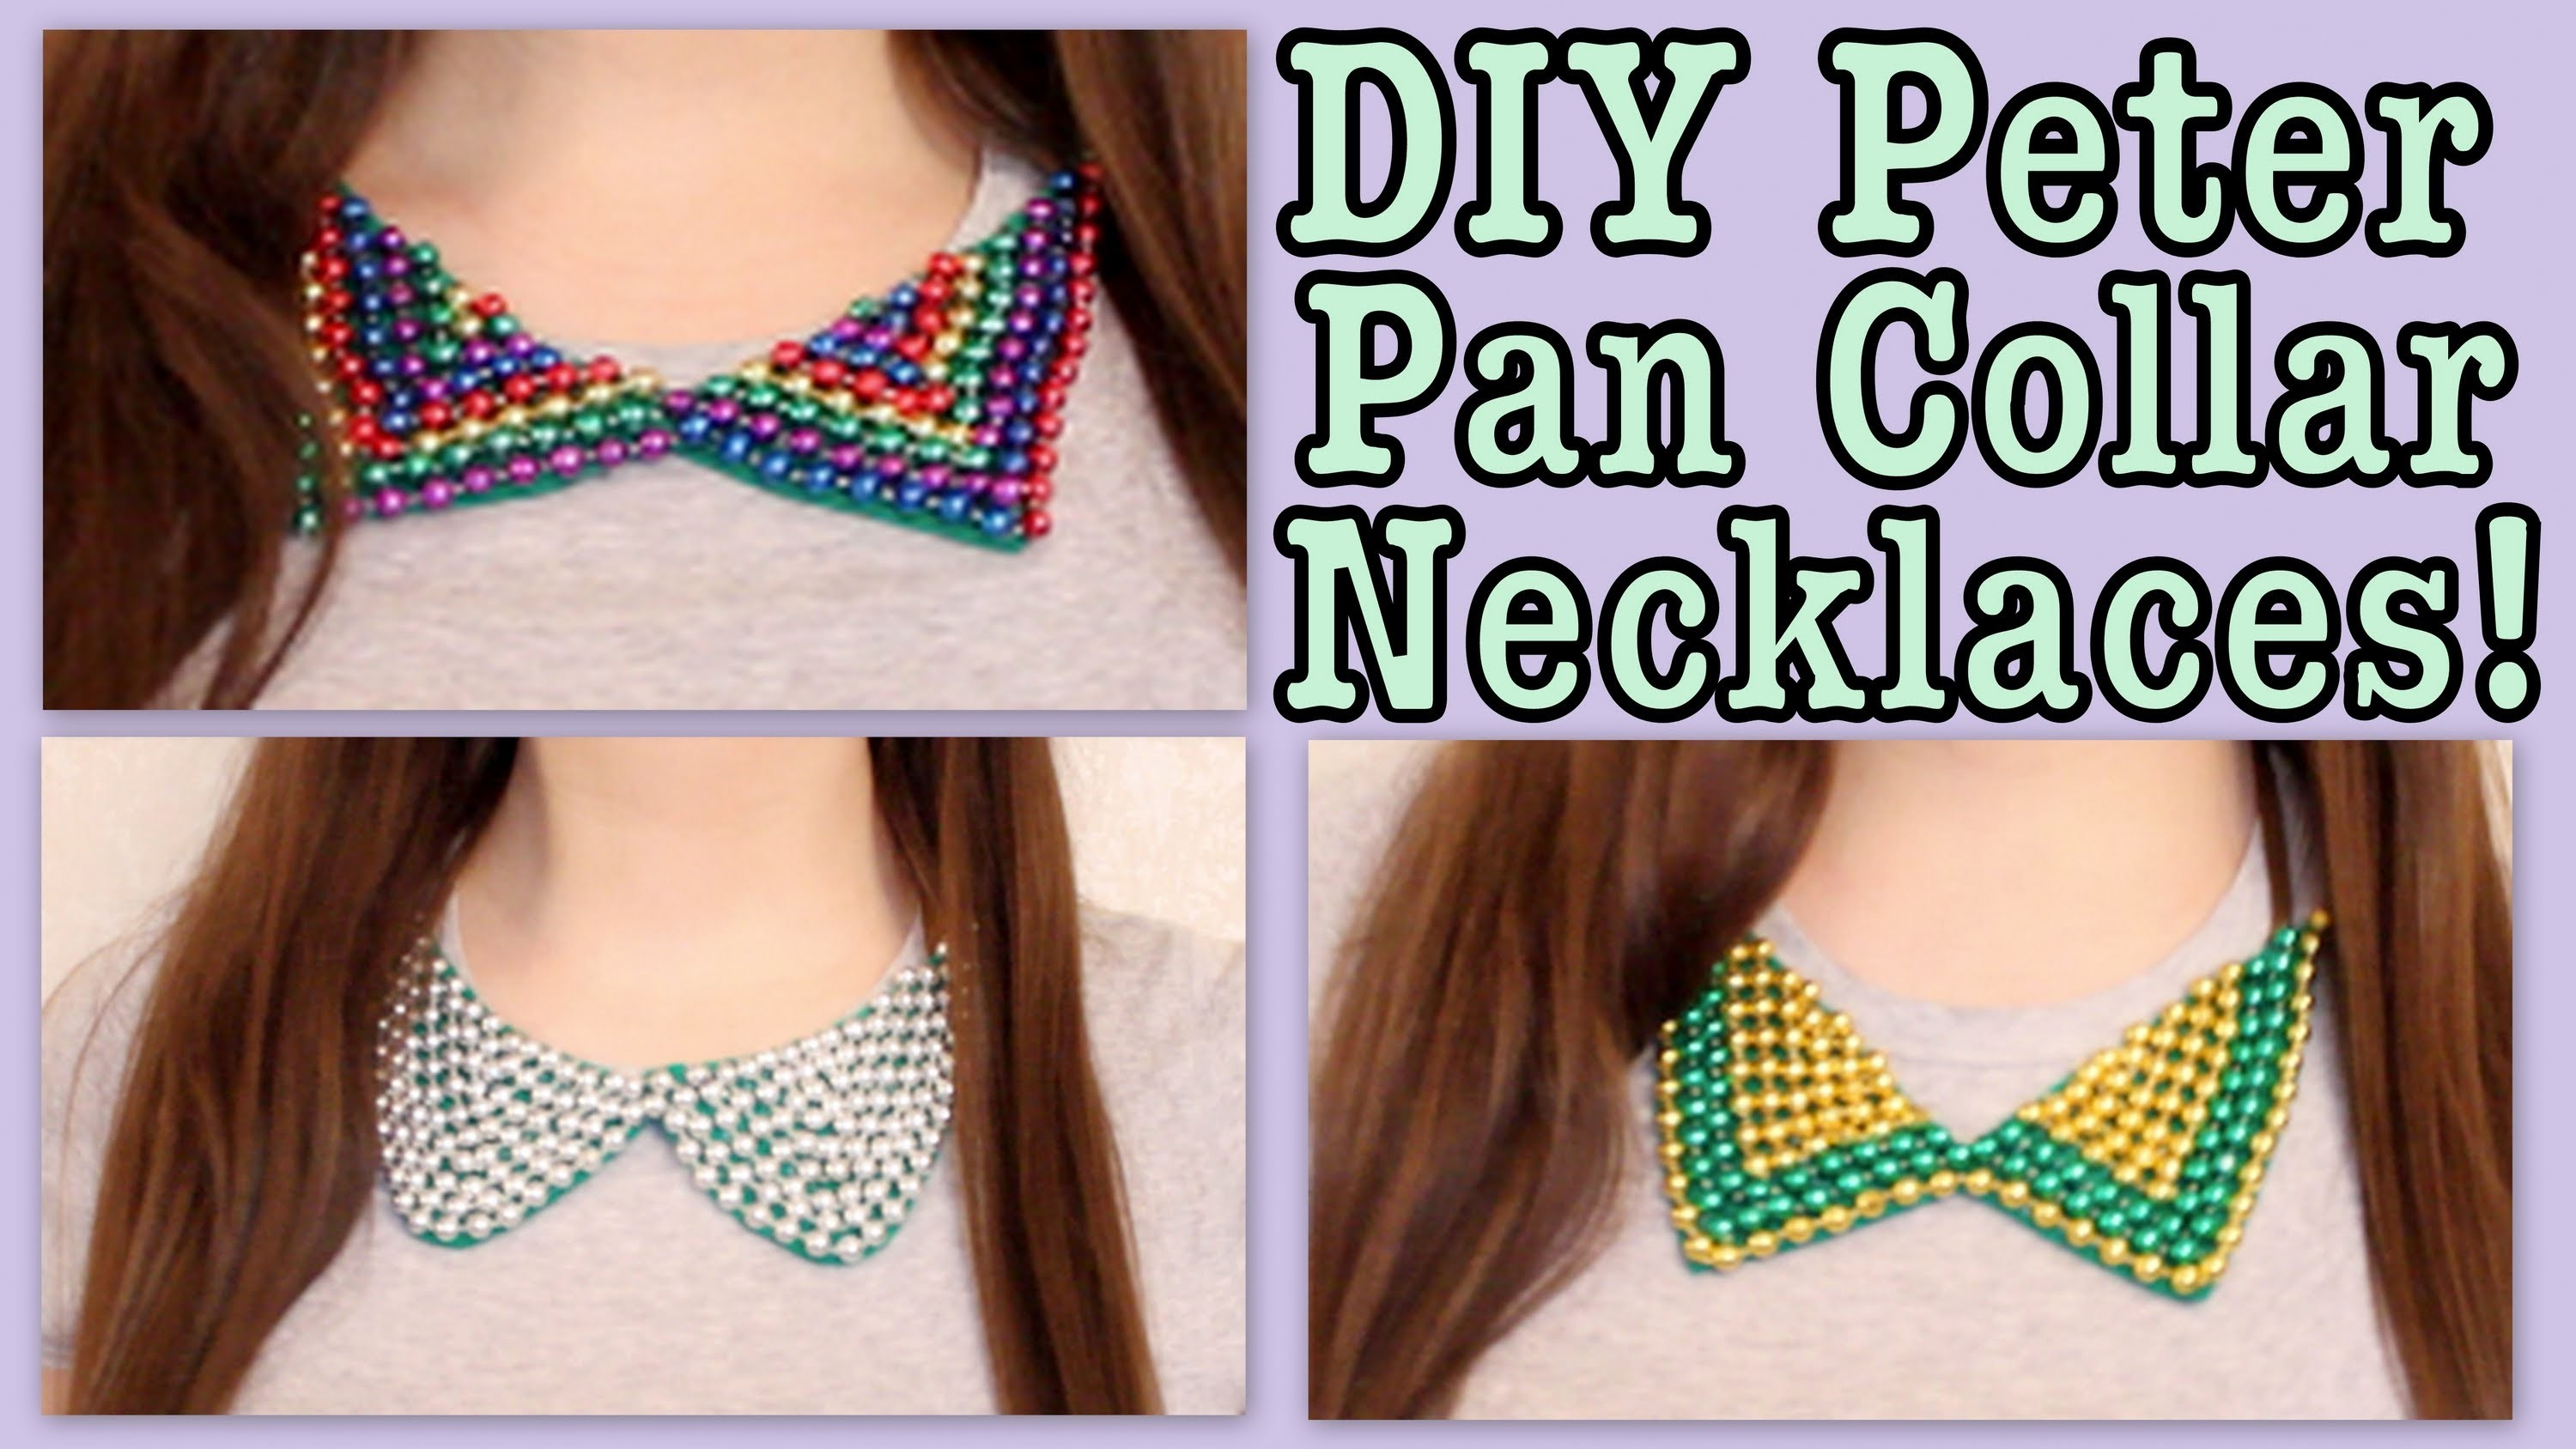 DIY: Peter Pan Collar Necklaces! FOR THE SUMMER!